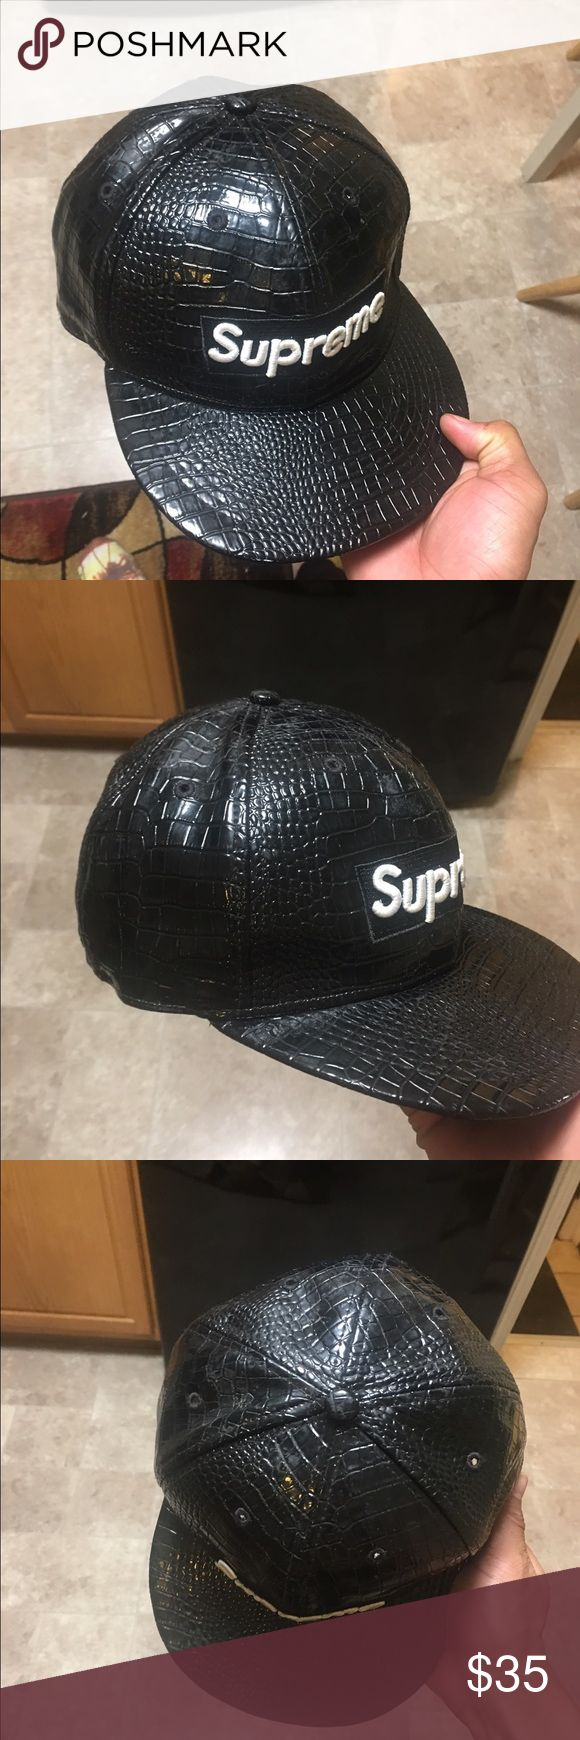 Supreme Hat Black and white leather supreme hat Supreme Other